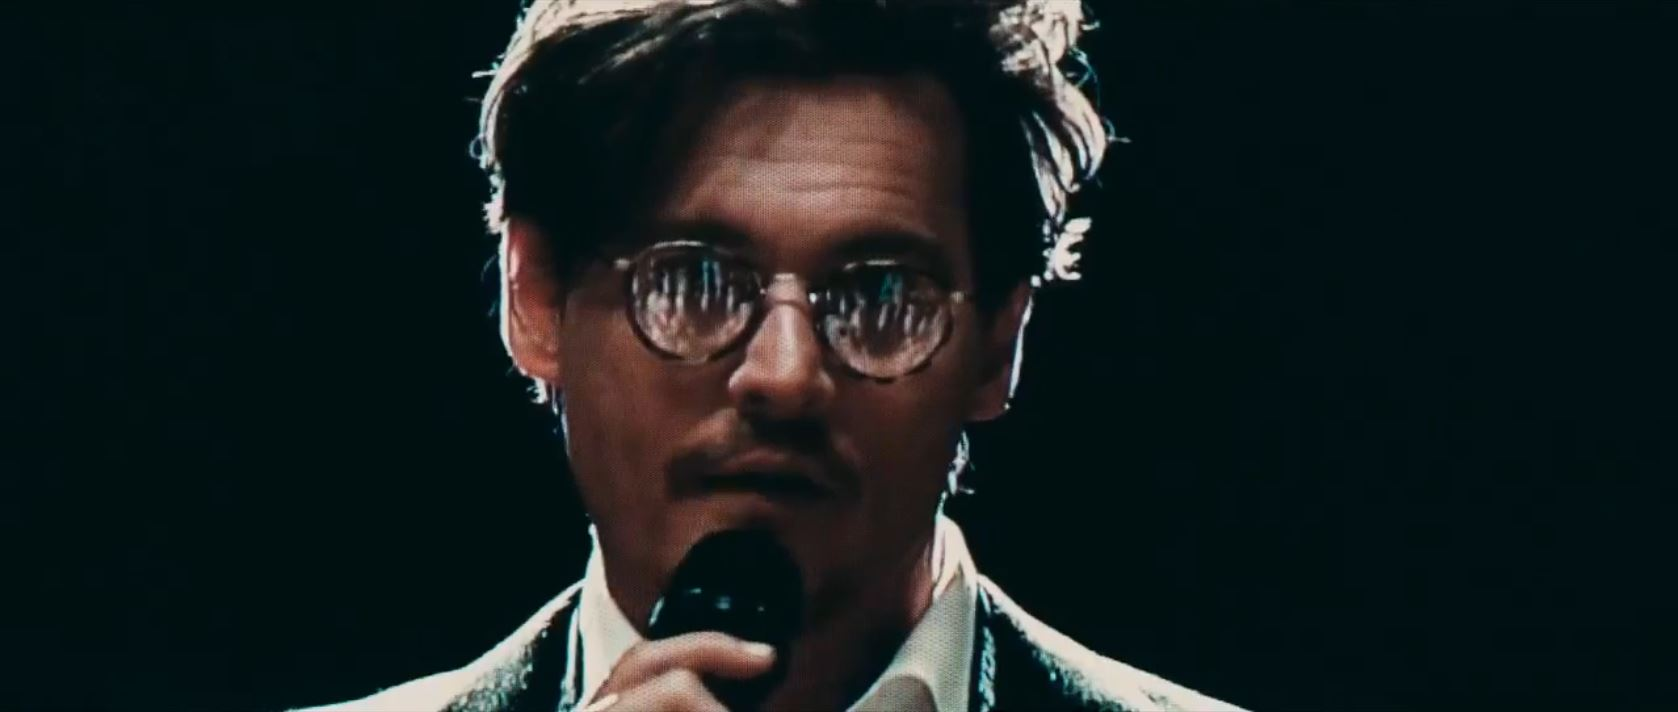 Transcendence starring Johnny Depp - Preview and Trailer ...